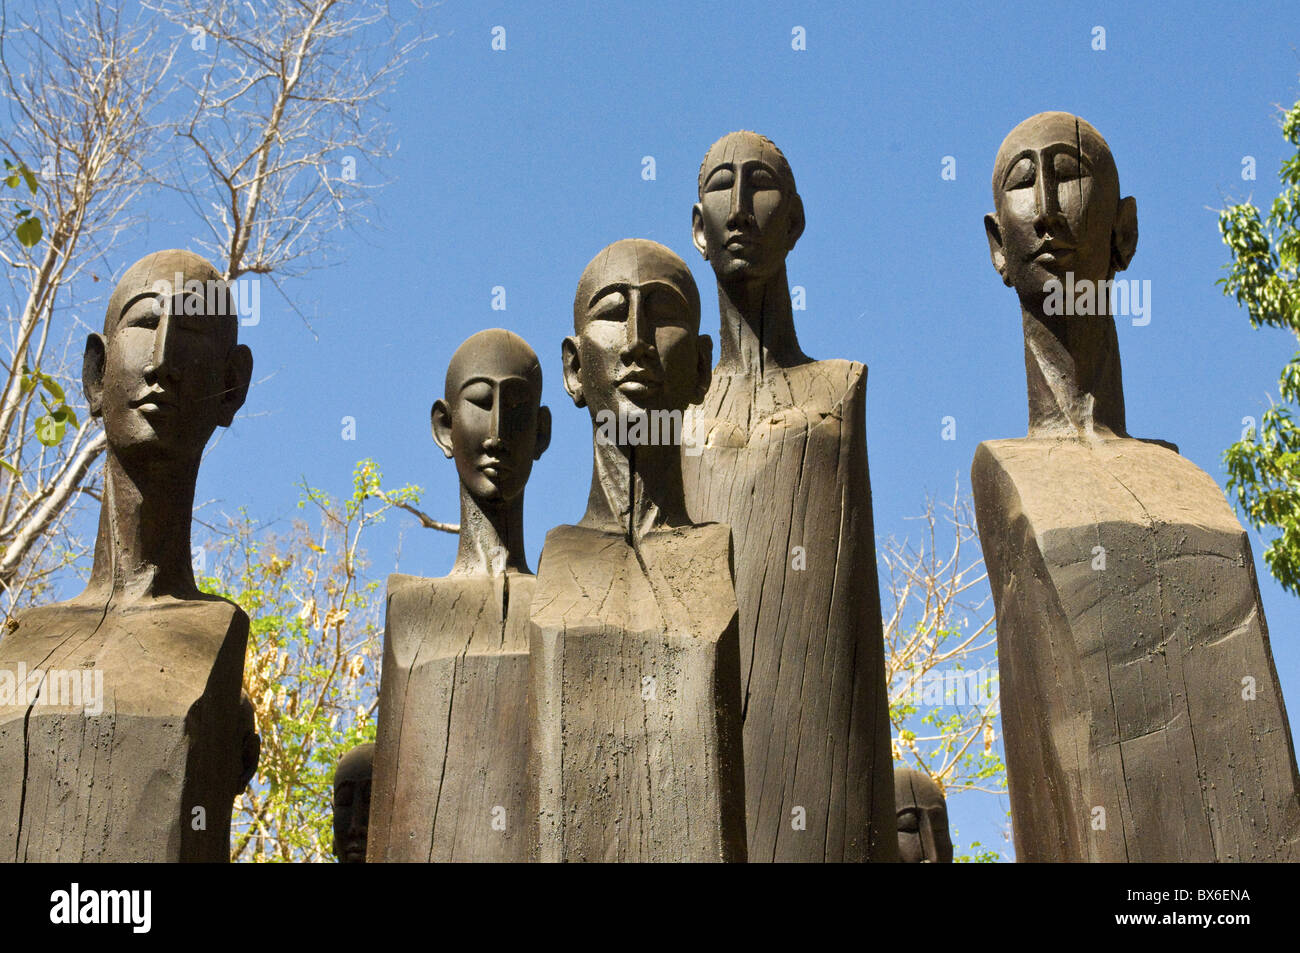 Wooden statues at the entrance of the Ankarafantsika National Park, Madagascar, Africa - Stock Image